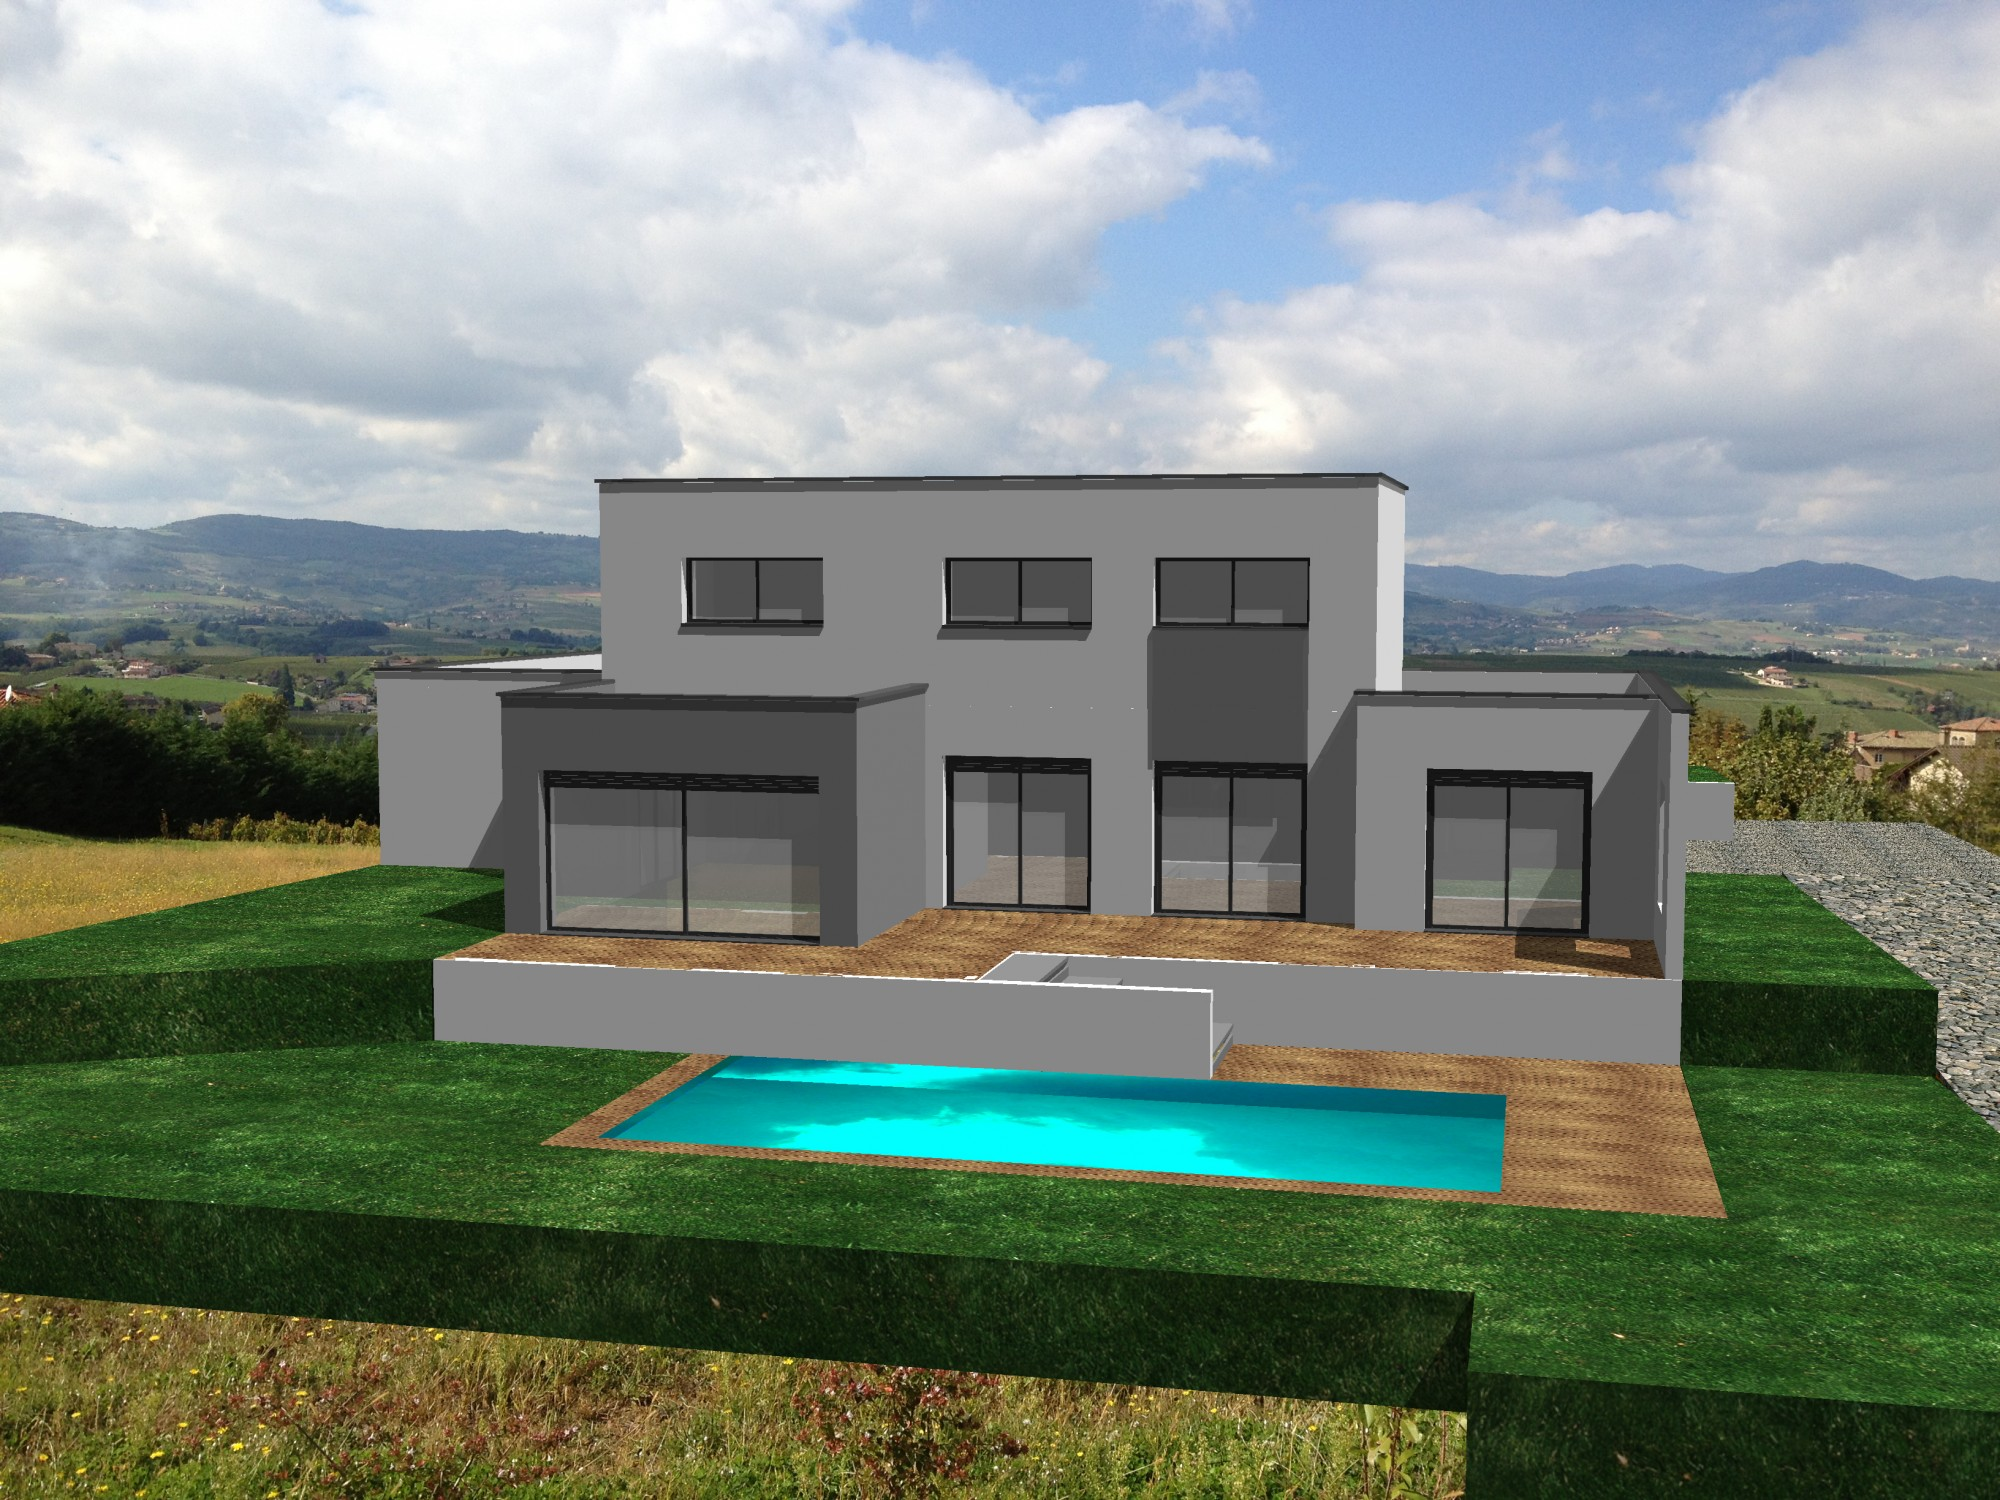 Concept creation fr univers photo de maison contemporaine a toit plat